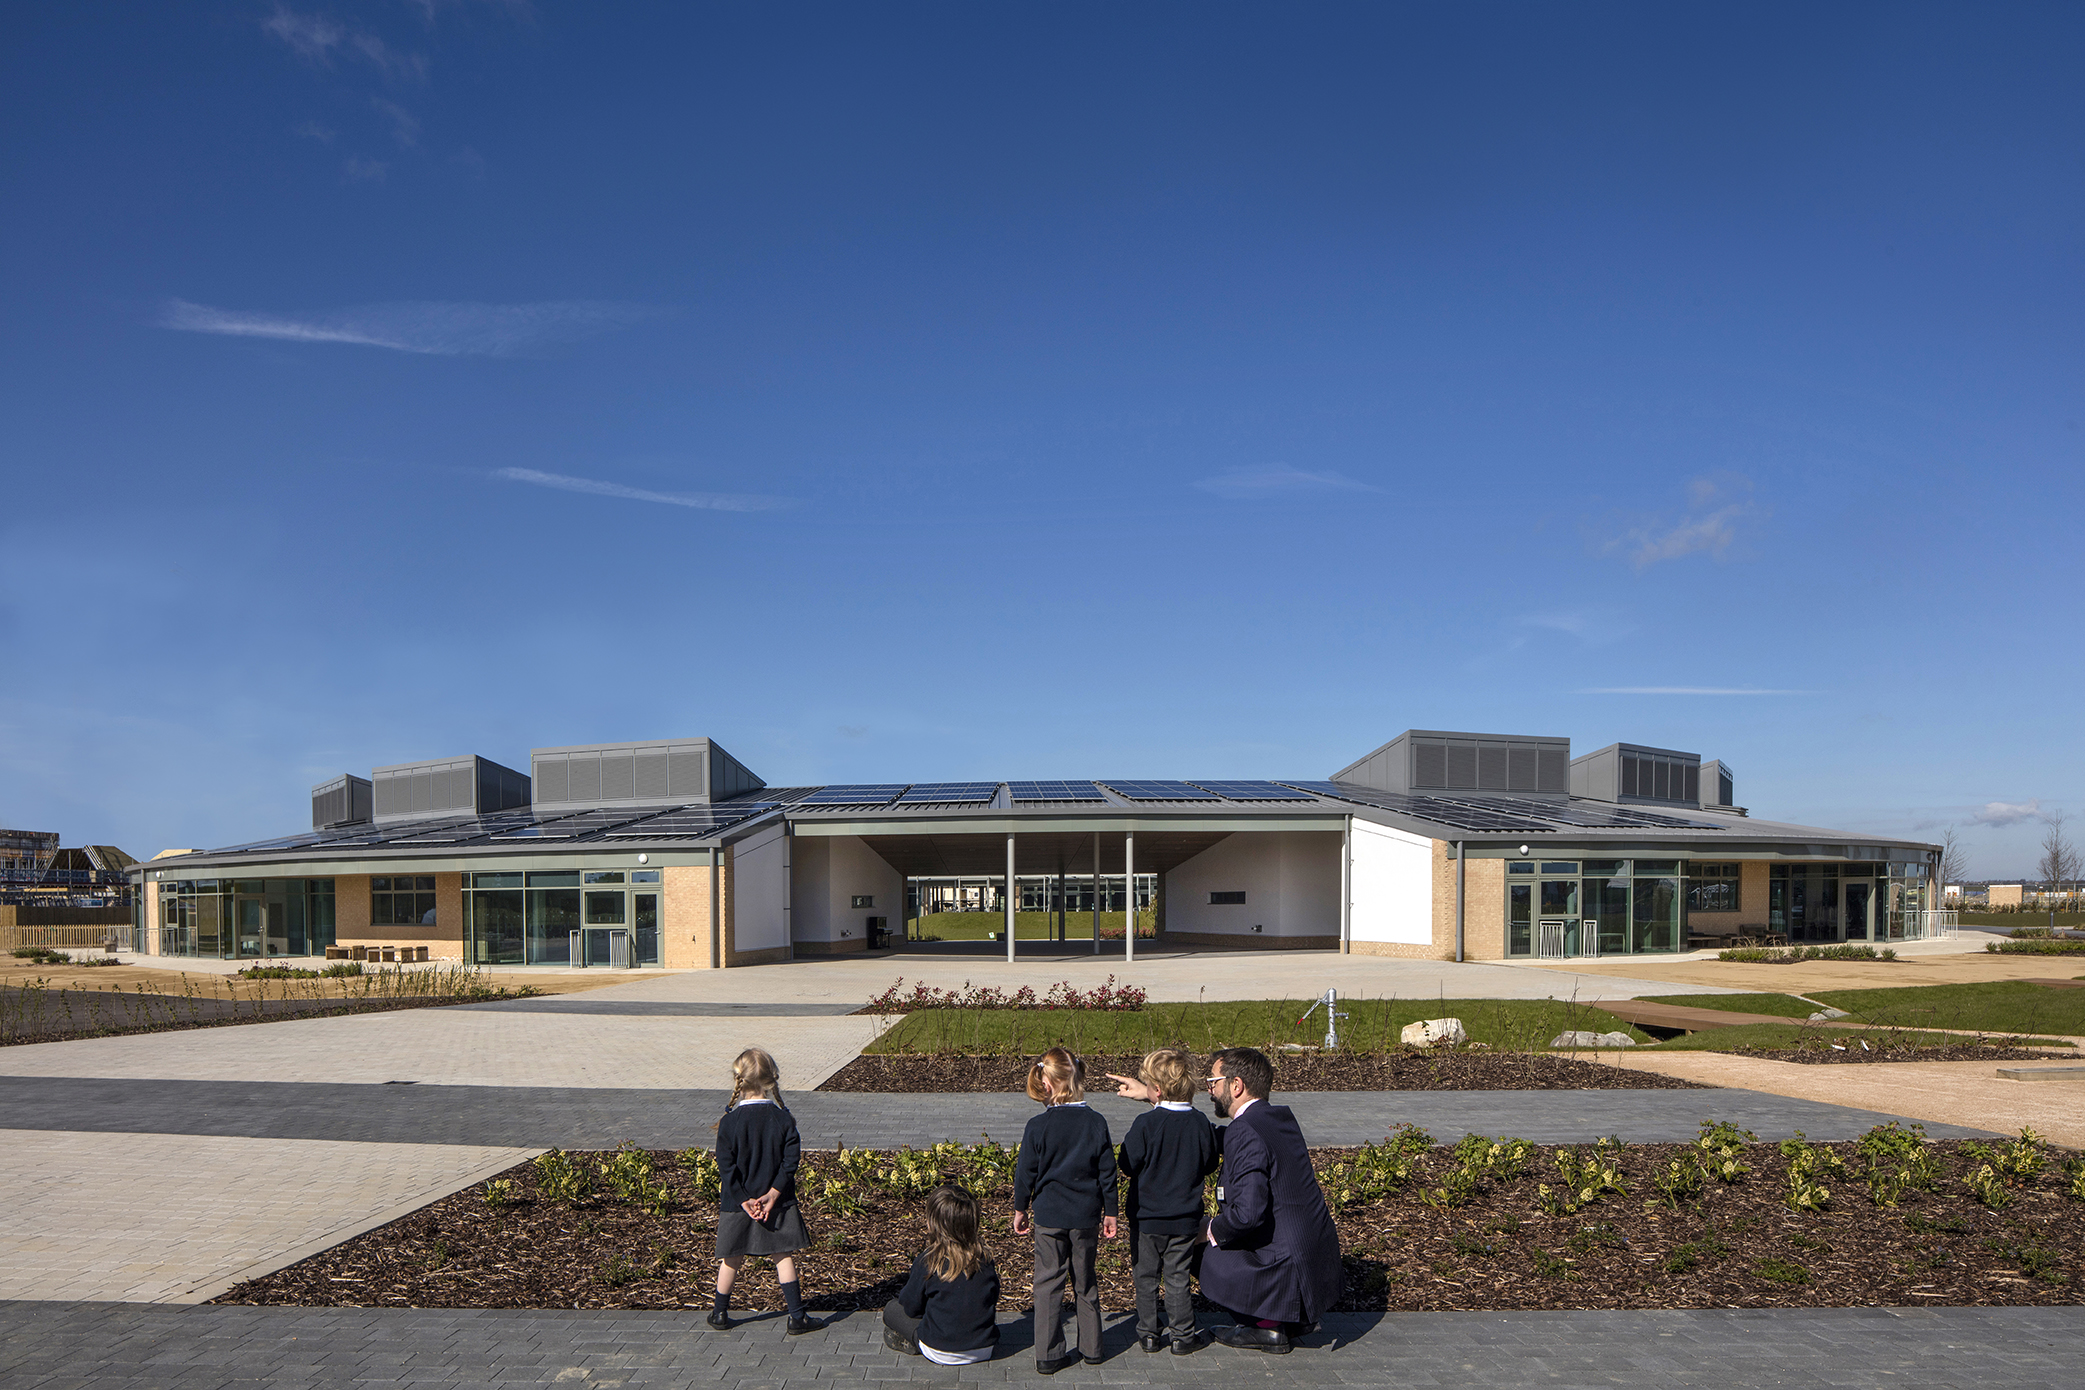 planting - University of Cambridge Primary School by Marks Barfield Architects